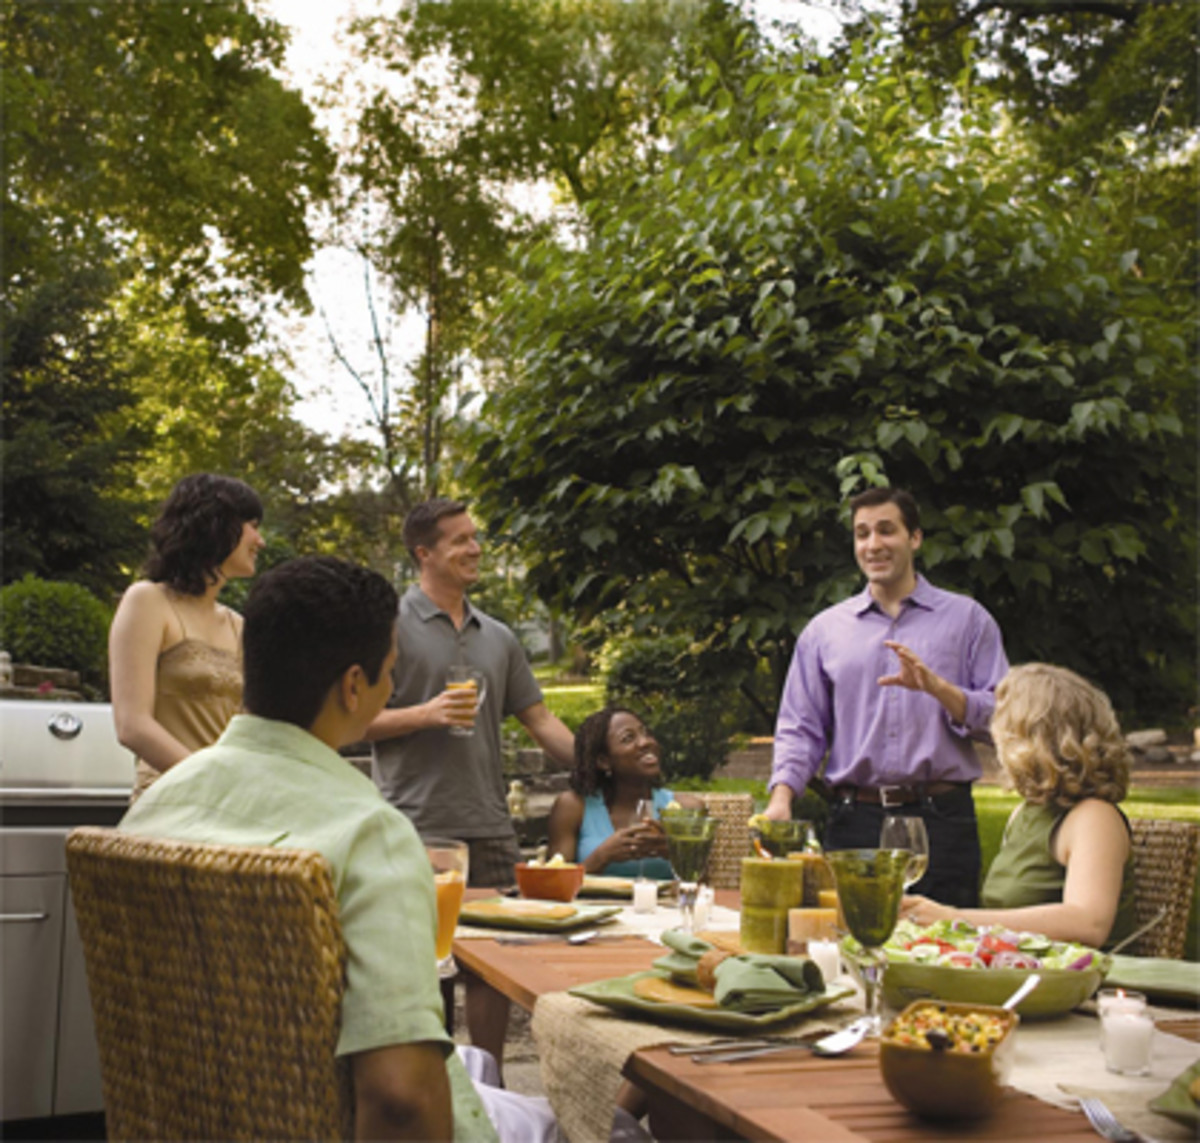 Backyard grilling has been growing for 40 years!